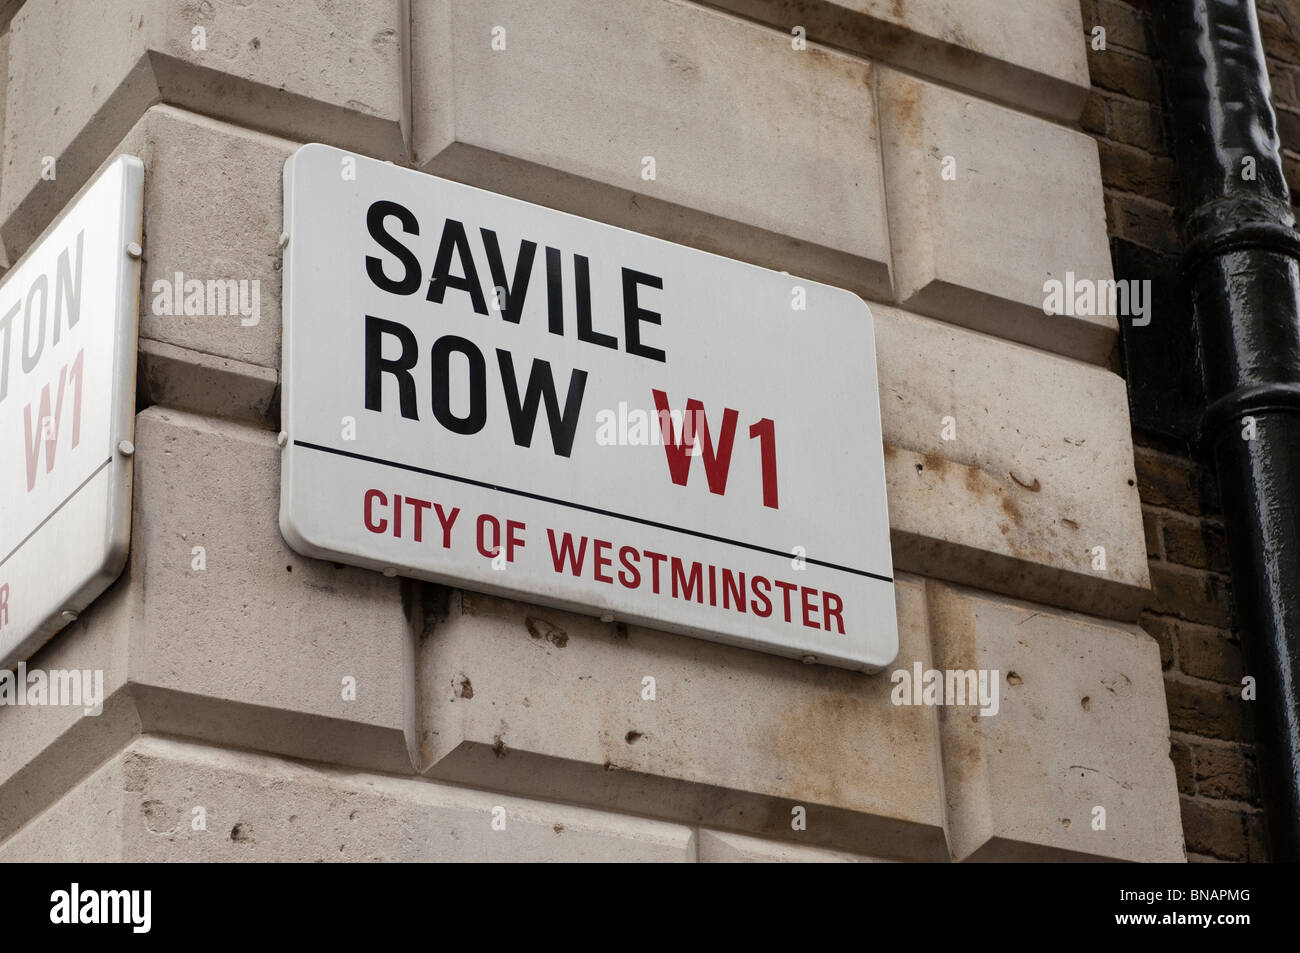 Saville Row street sign on the wall of a building. London W1, United Kingdom - Stock Image